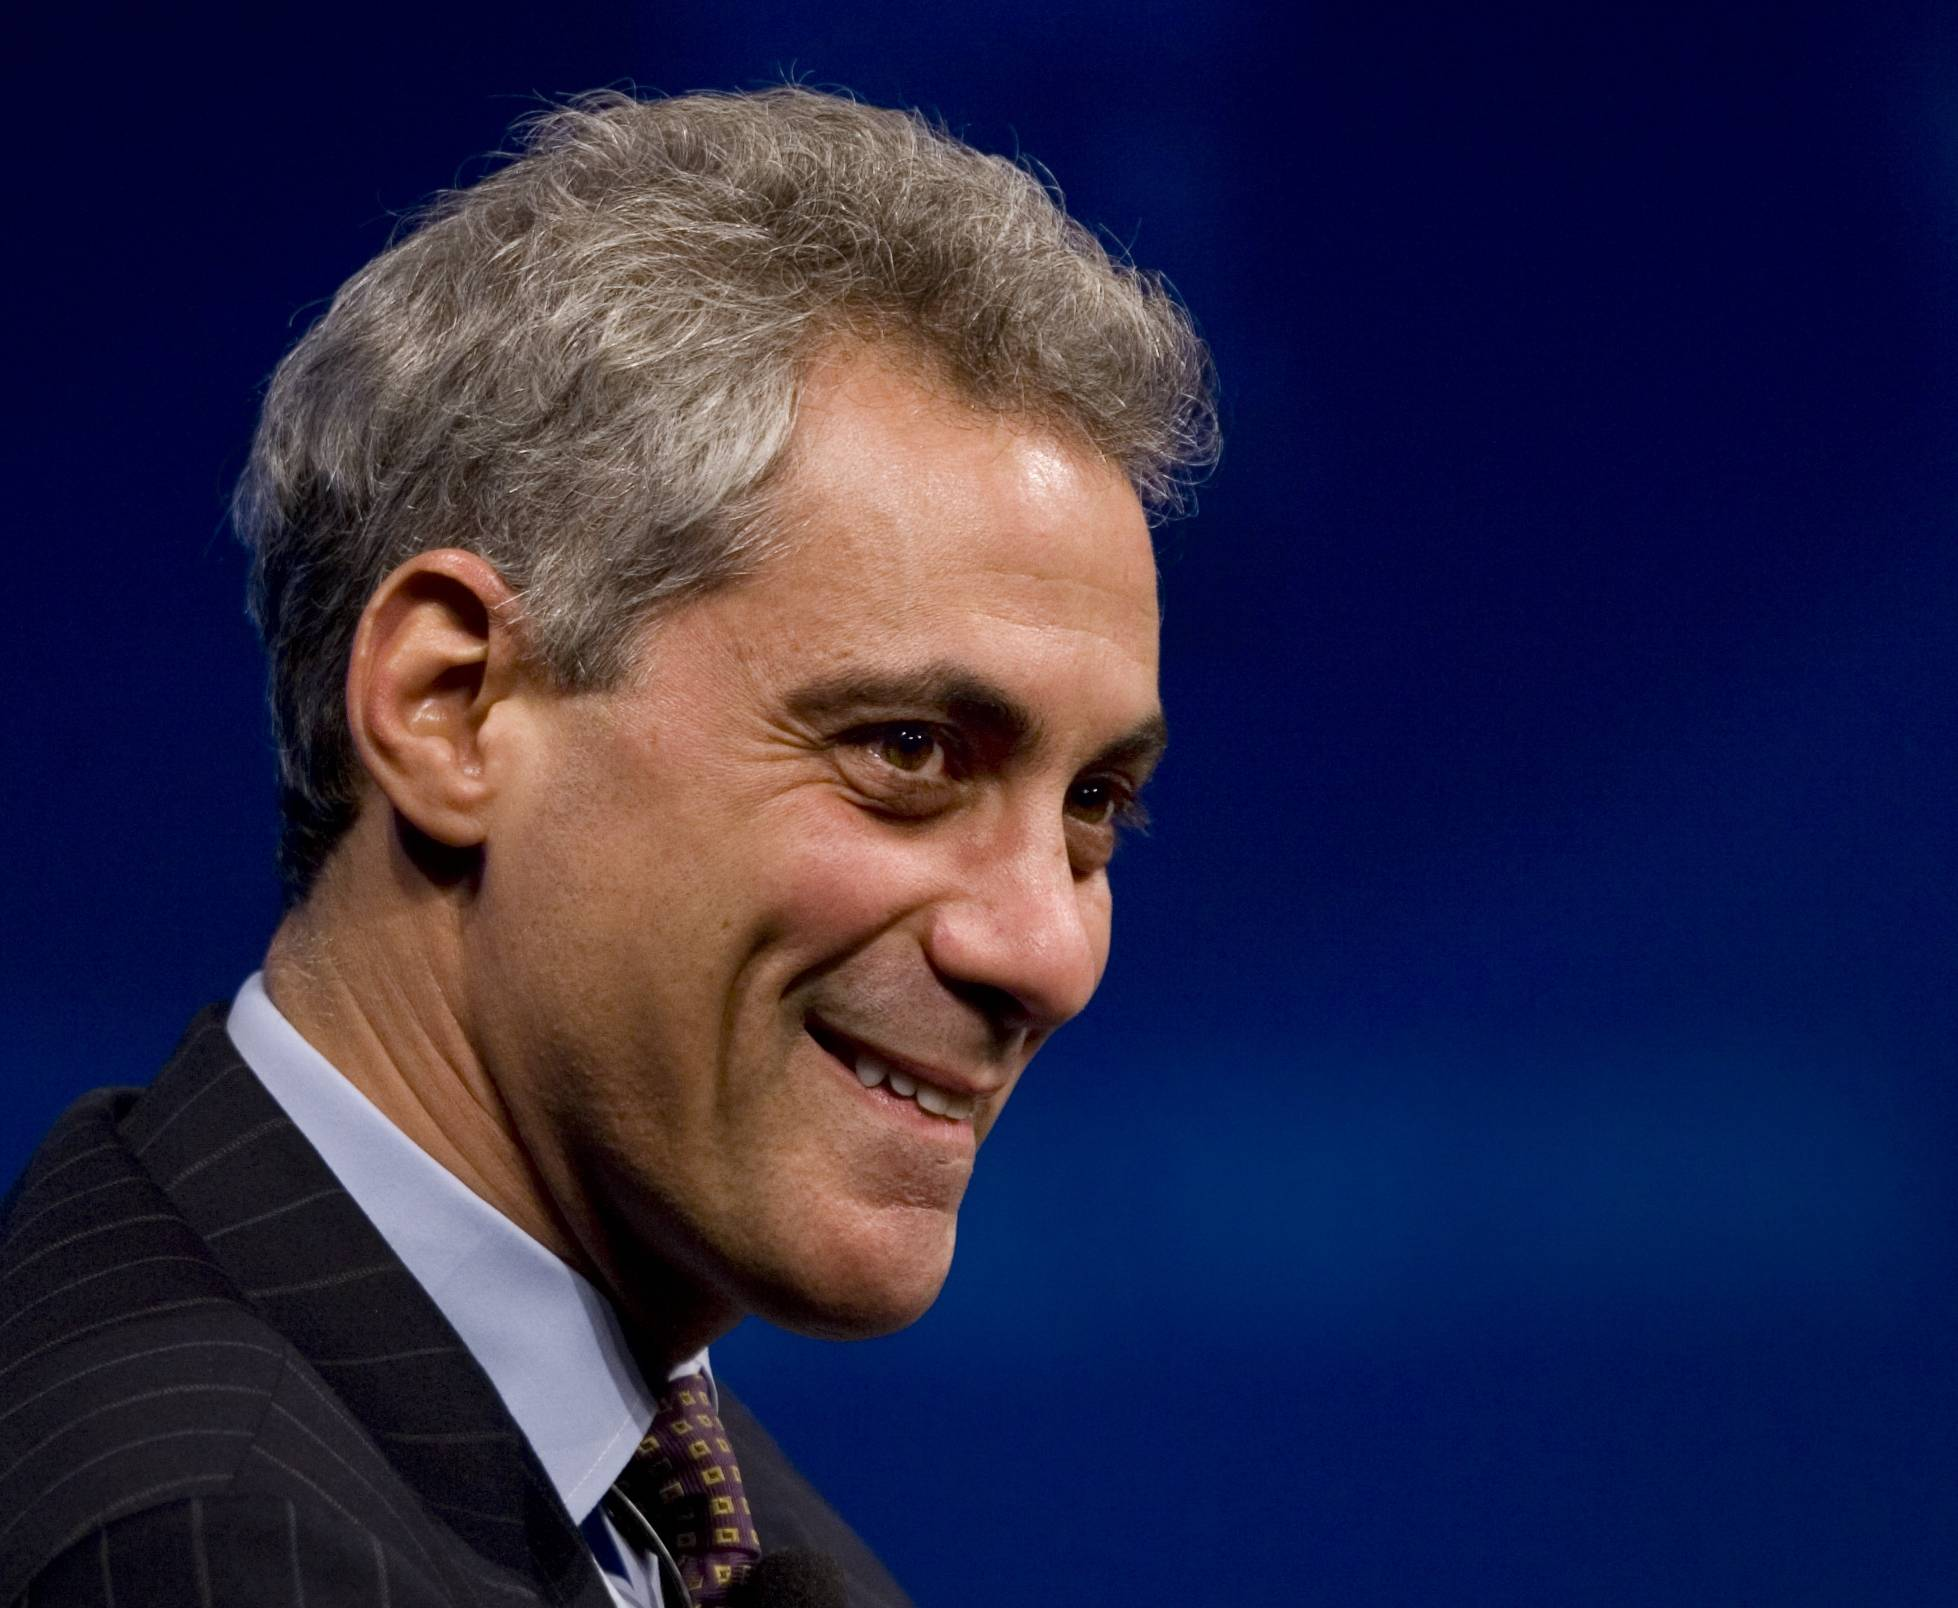 No one in Chicago is talking these days about Rahm Emanuel running for president.